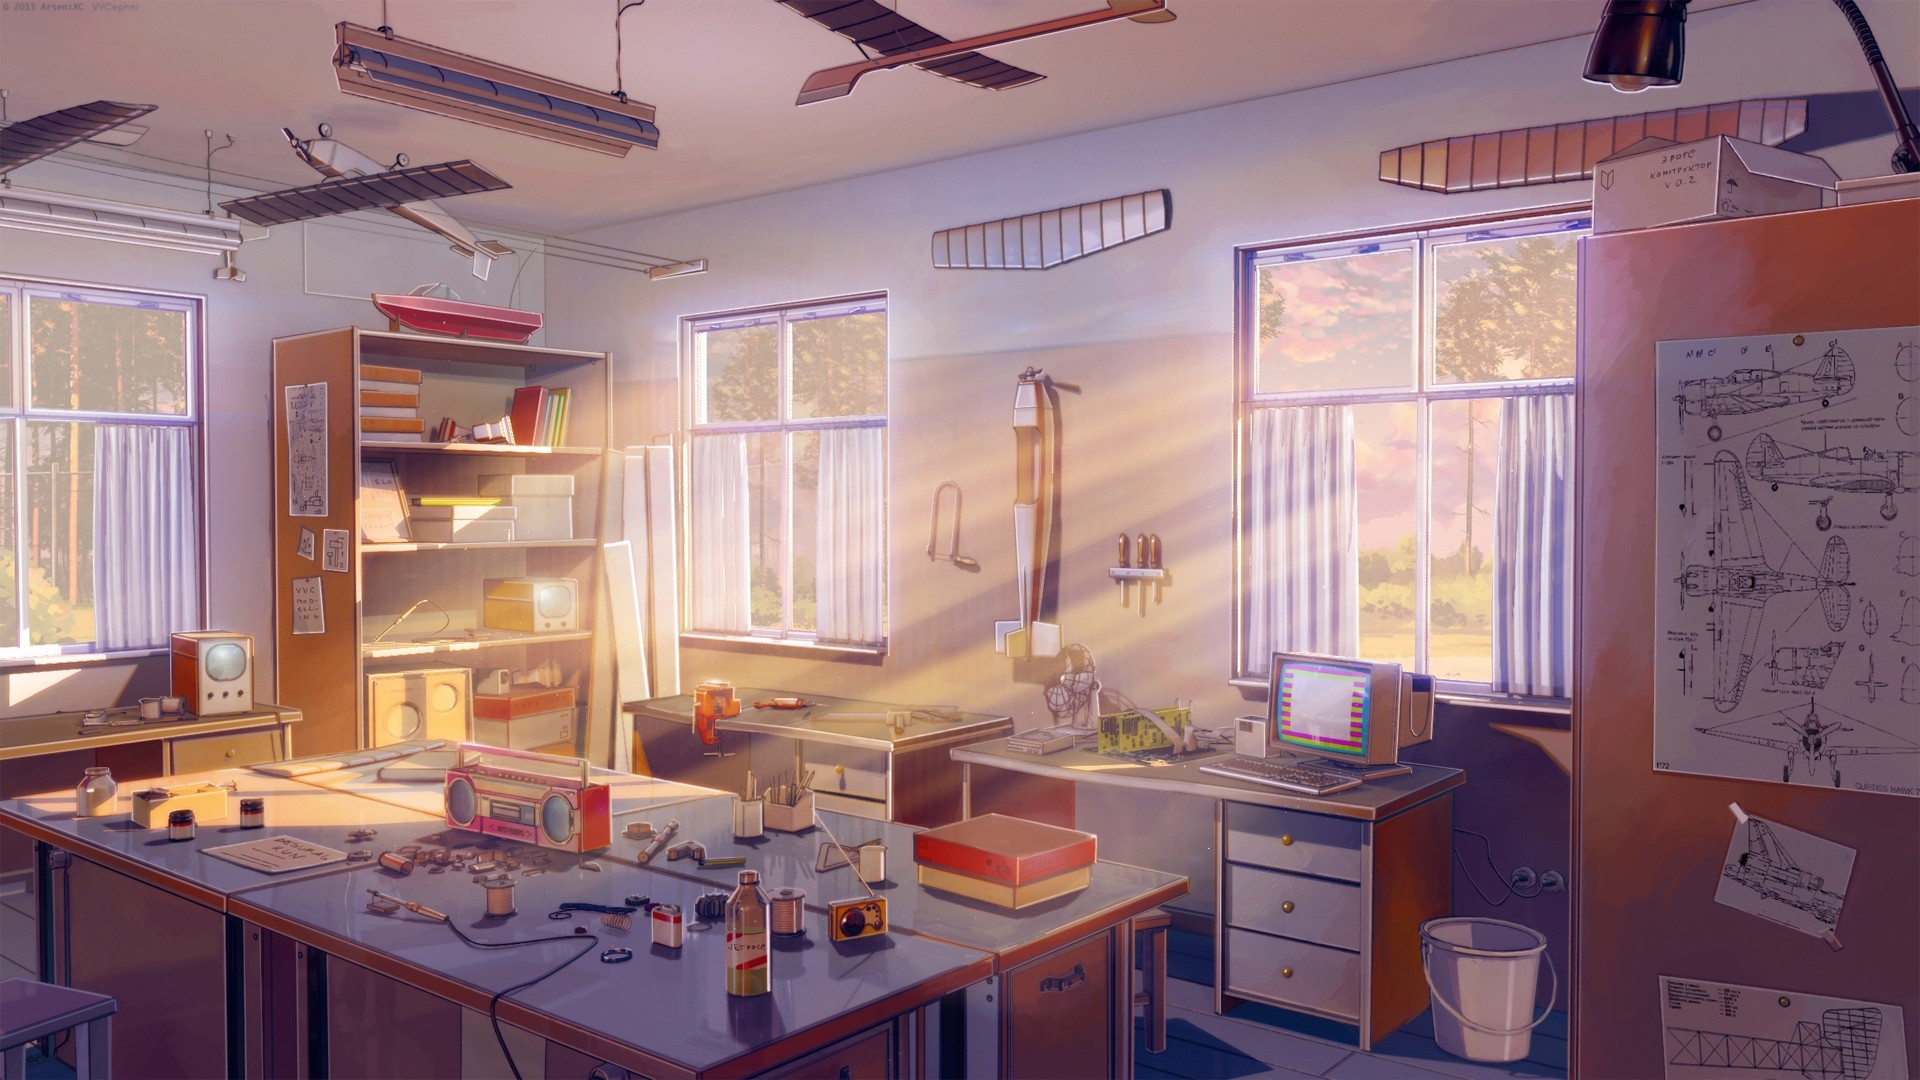 Anime Kitchen hd wallpaper download